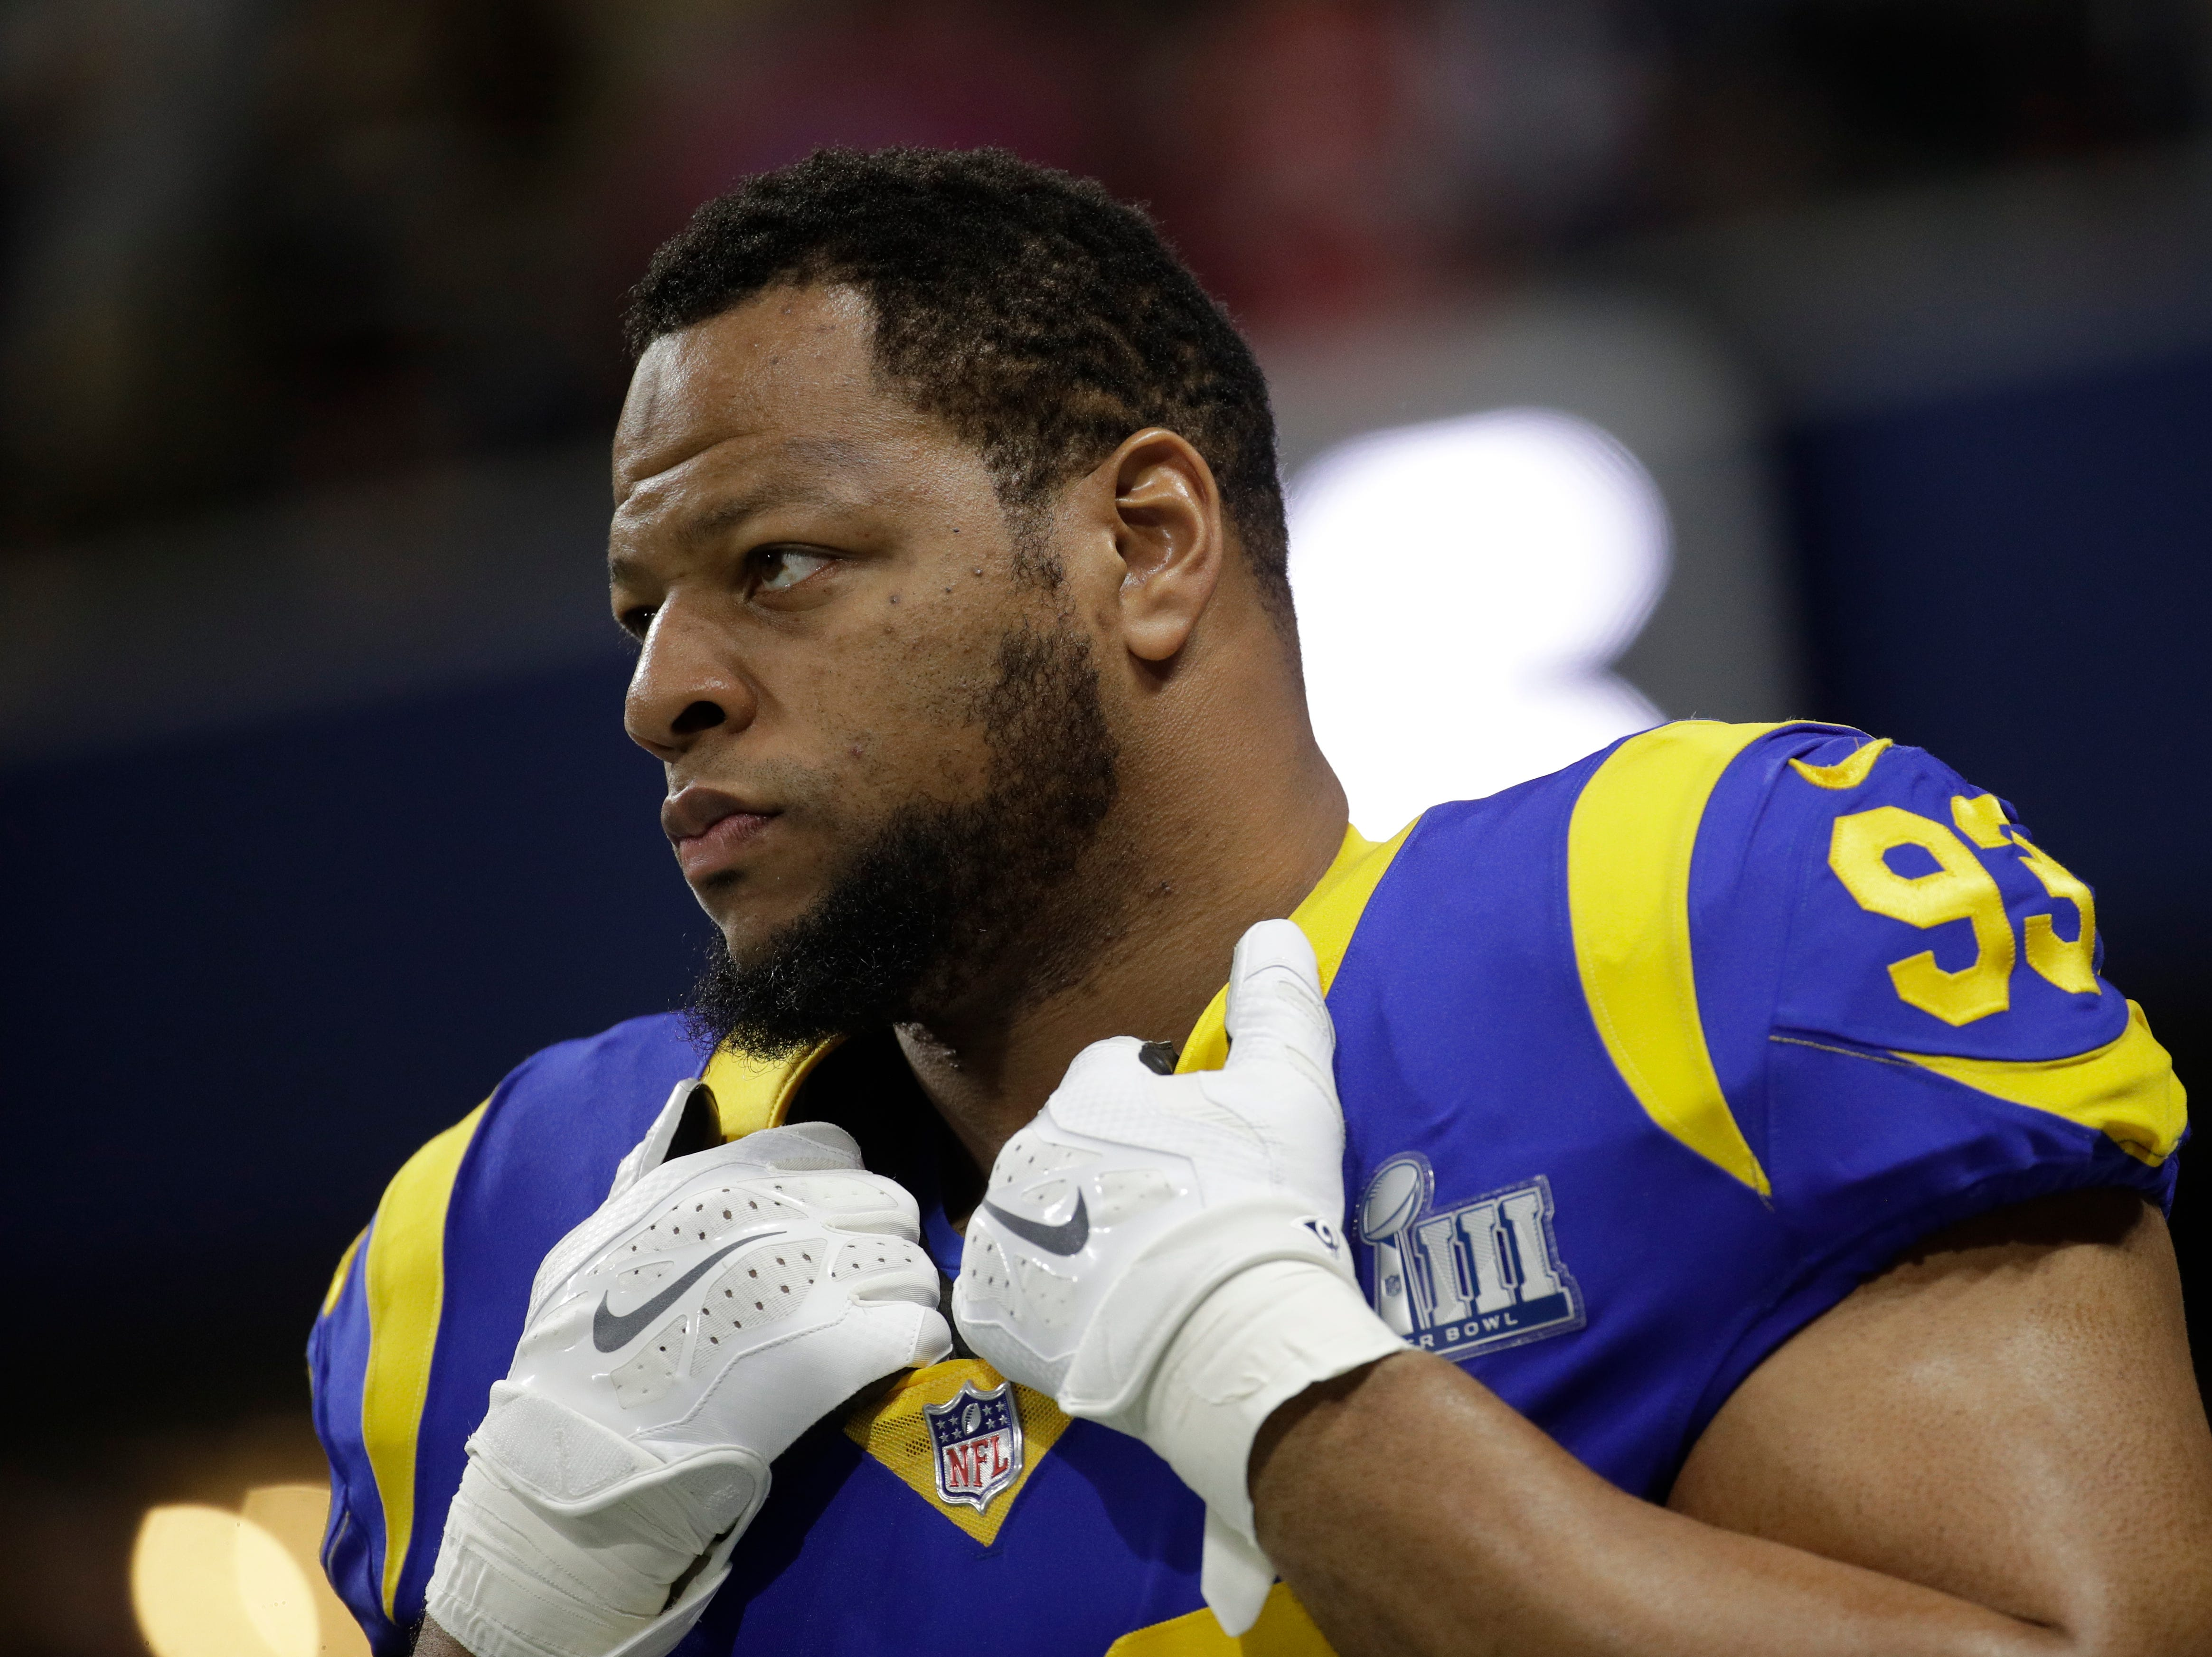 Los Angeles Rams' Ndamukong Suh (93) warms up before the game.